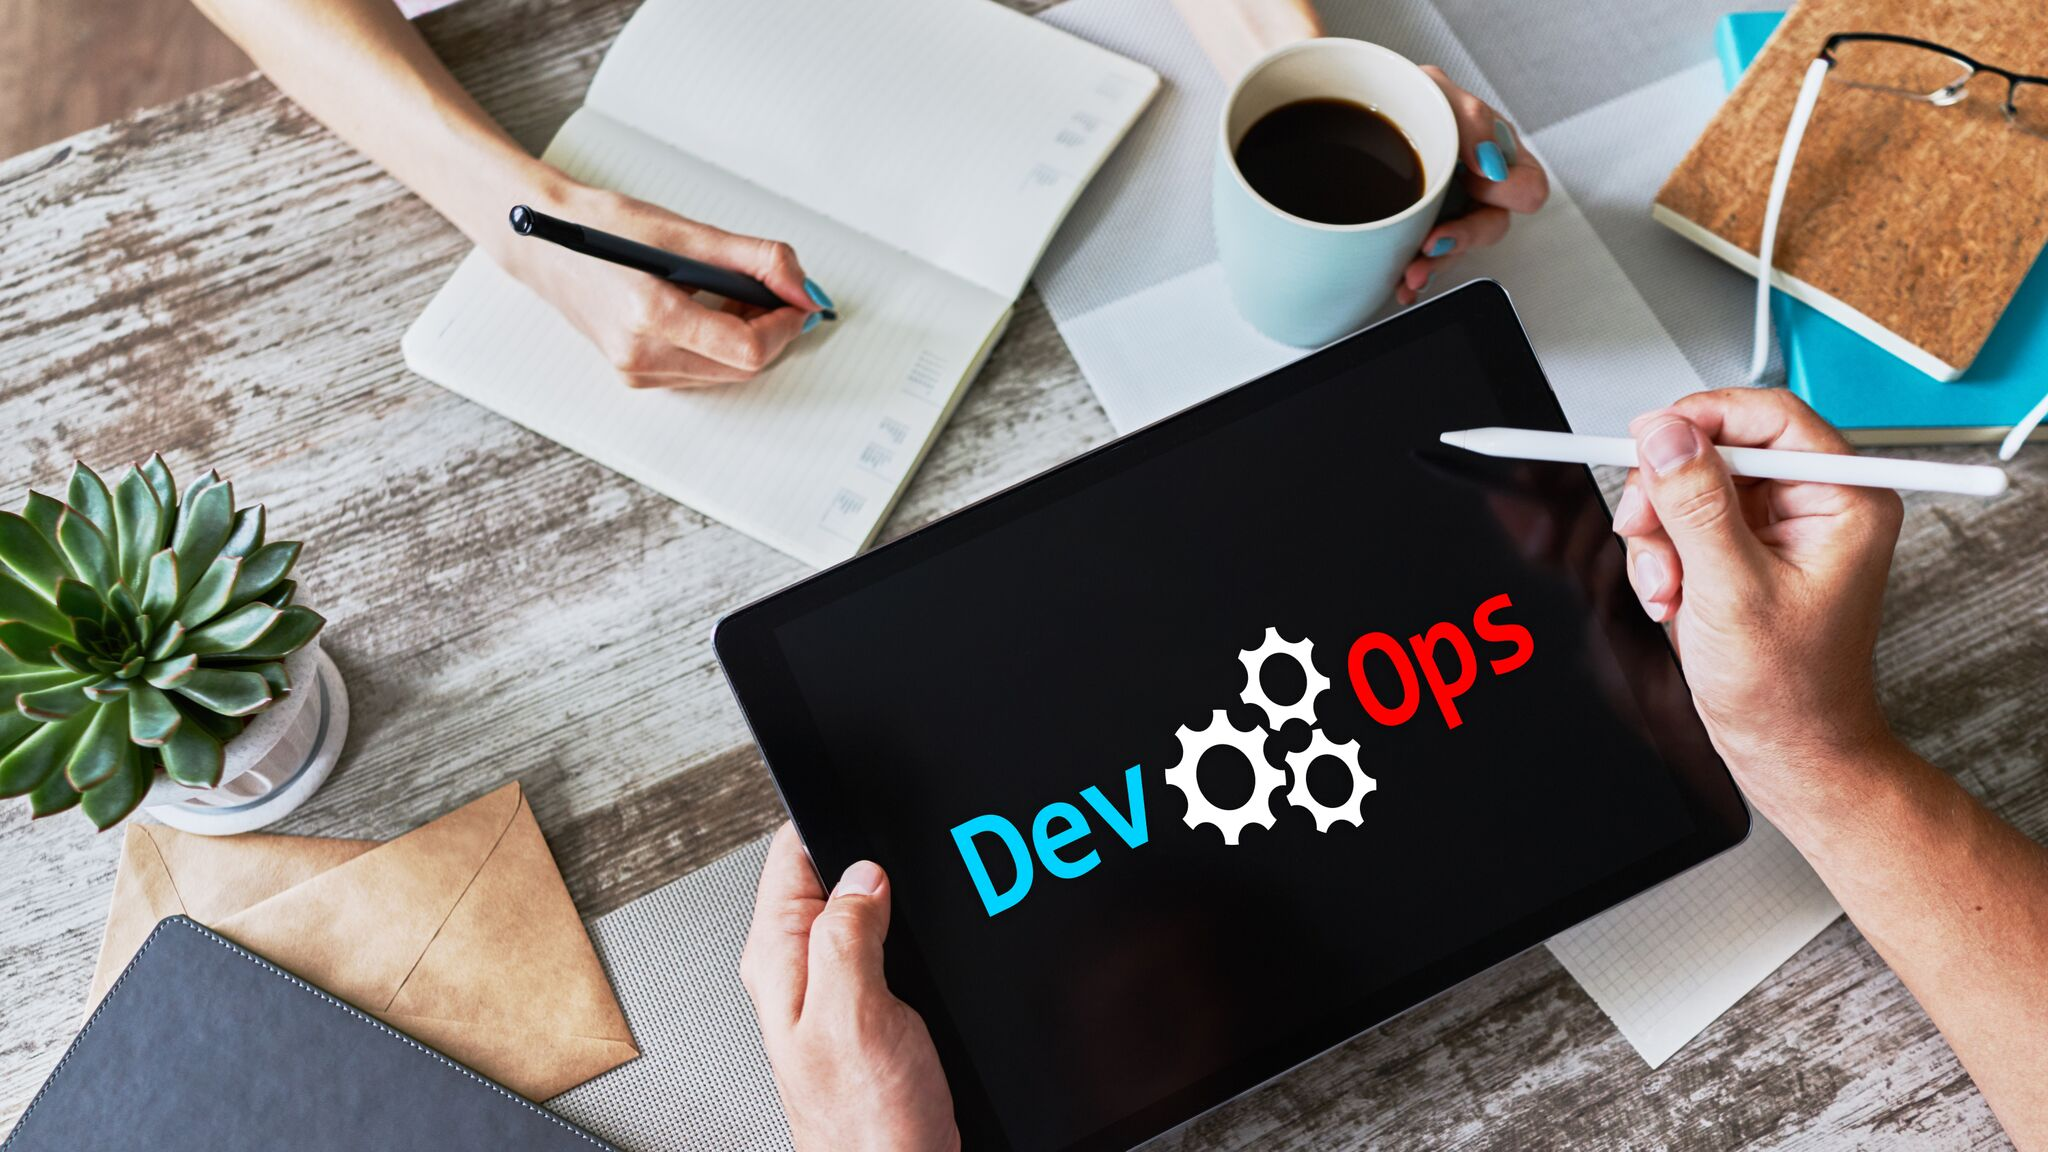 Using DevOps for Exponential Business Growth